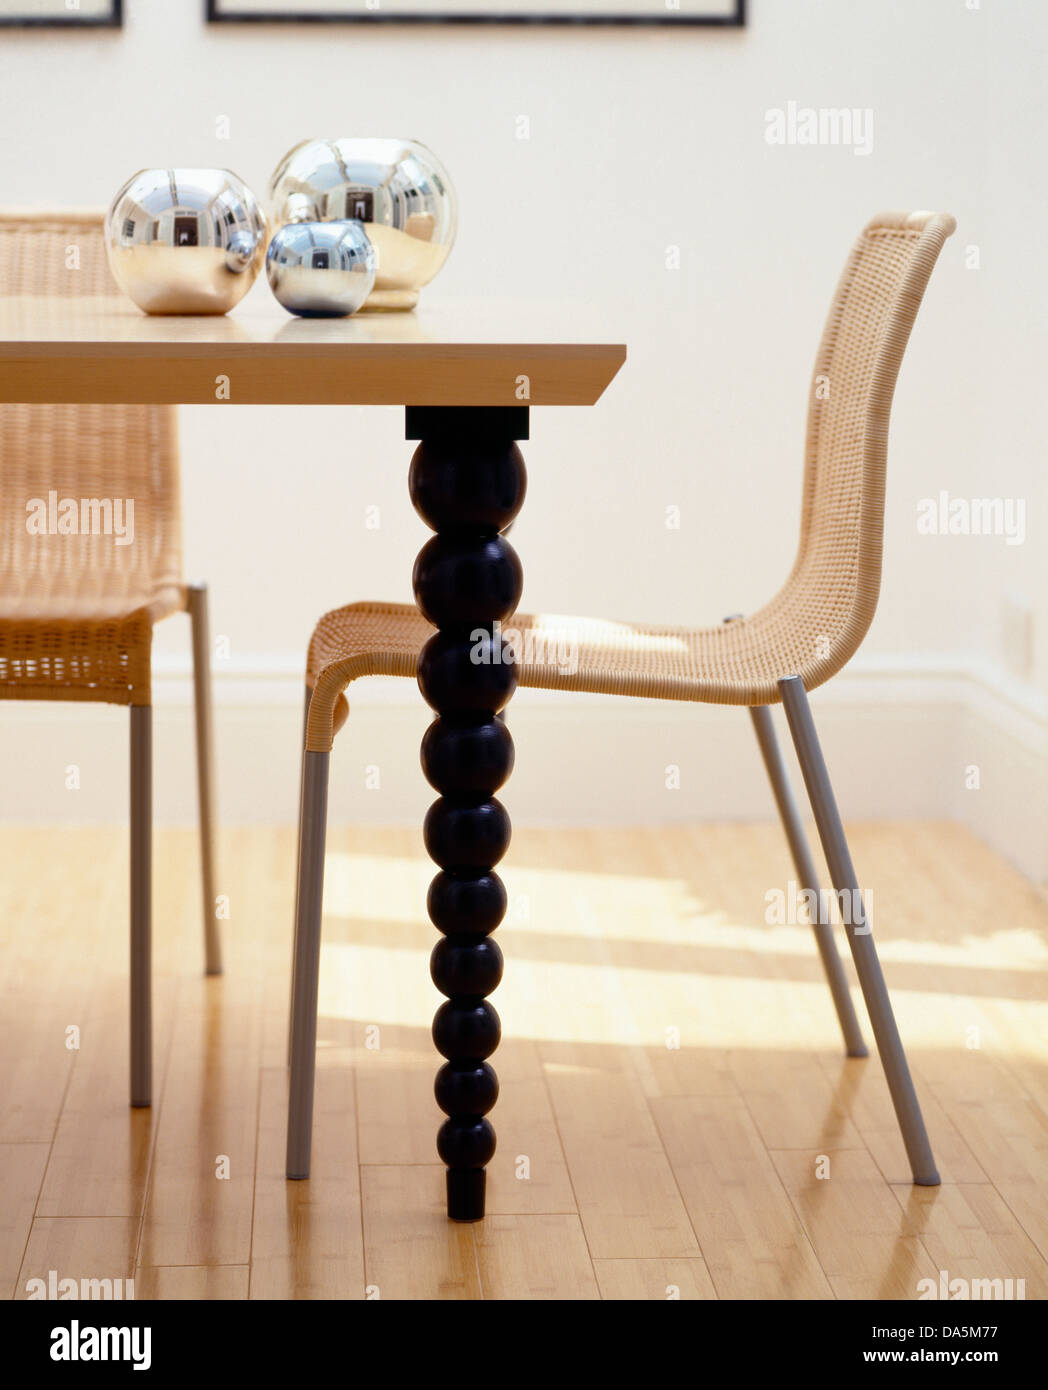 wooden and metal chairs diy wickermetal chairs at wooden table with turned spindle legs in modern dining room